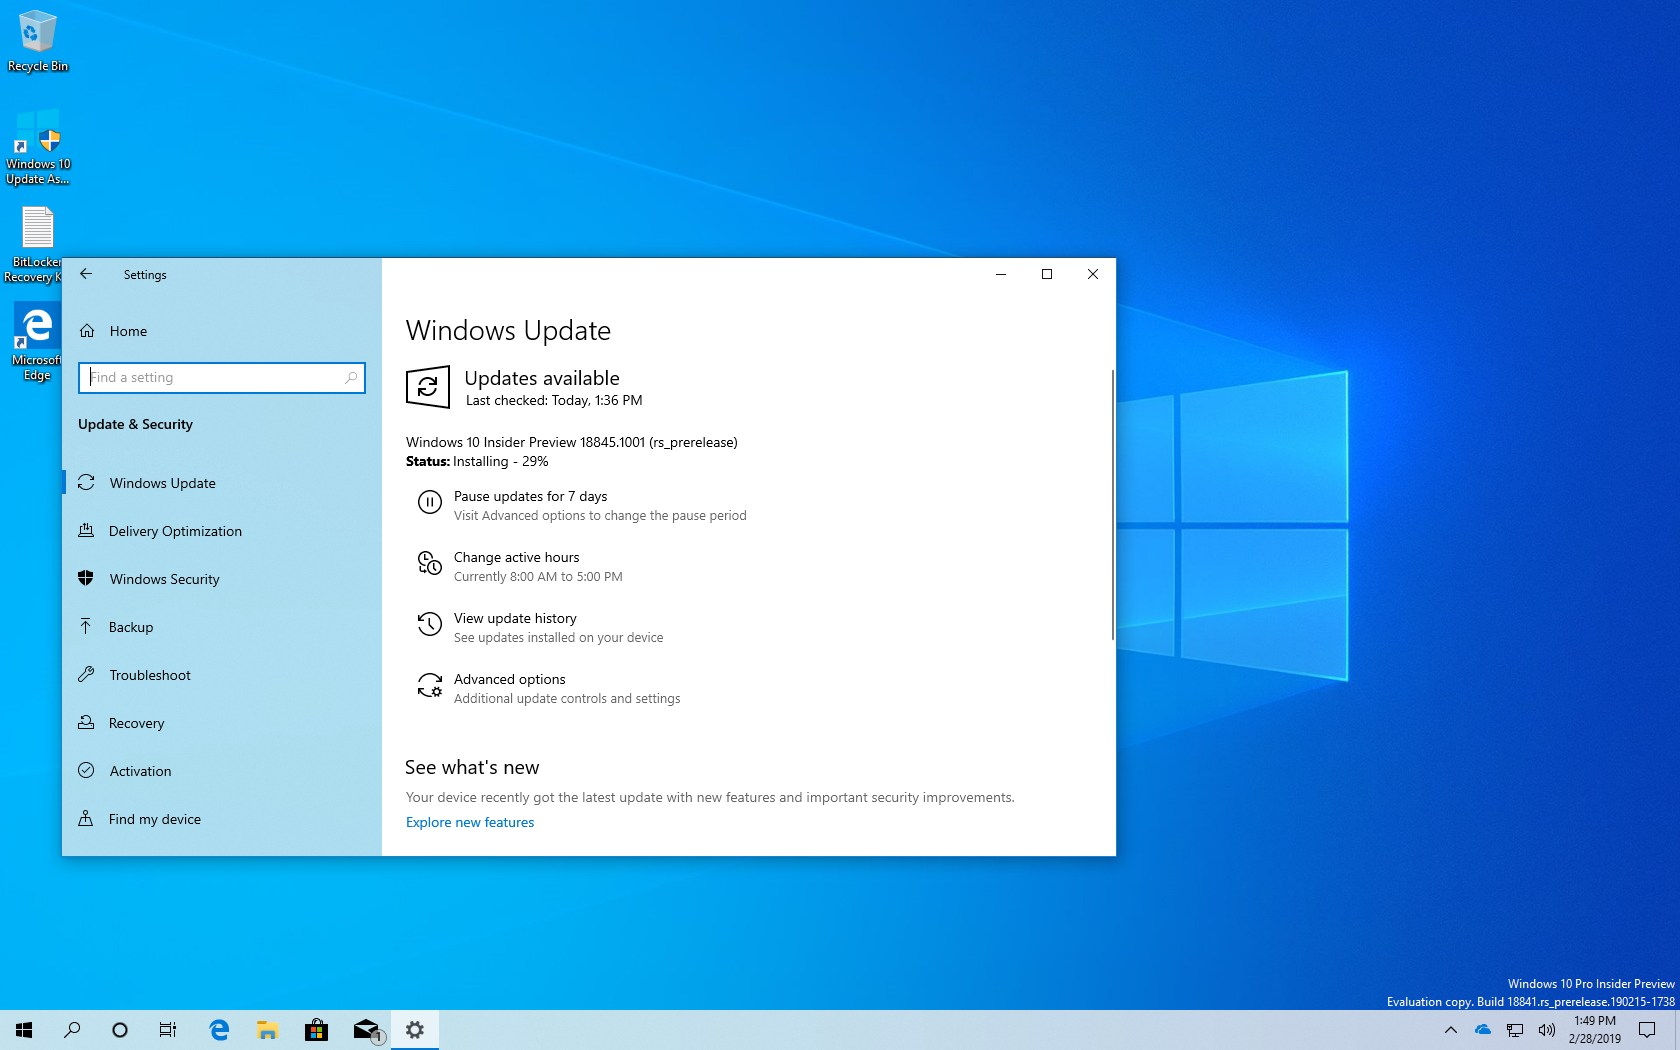 Windows 10 20h1 Iso Download